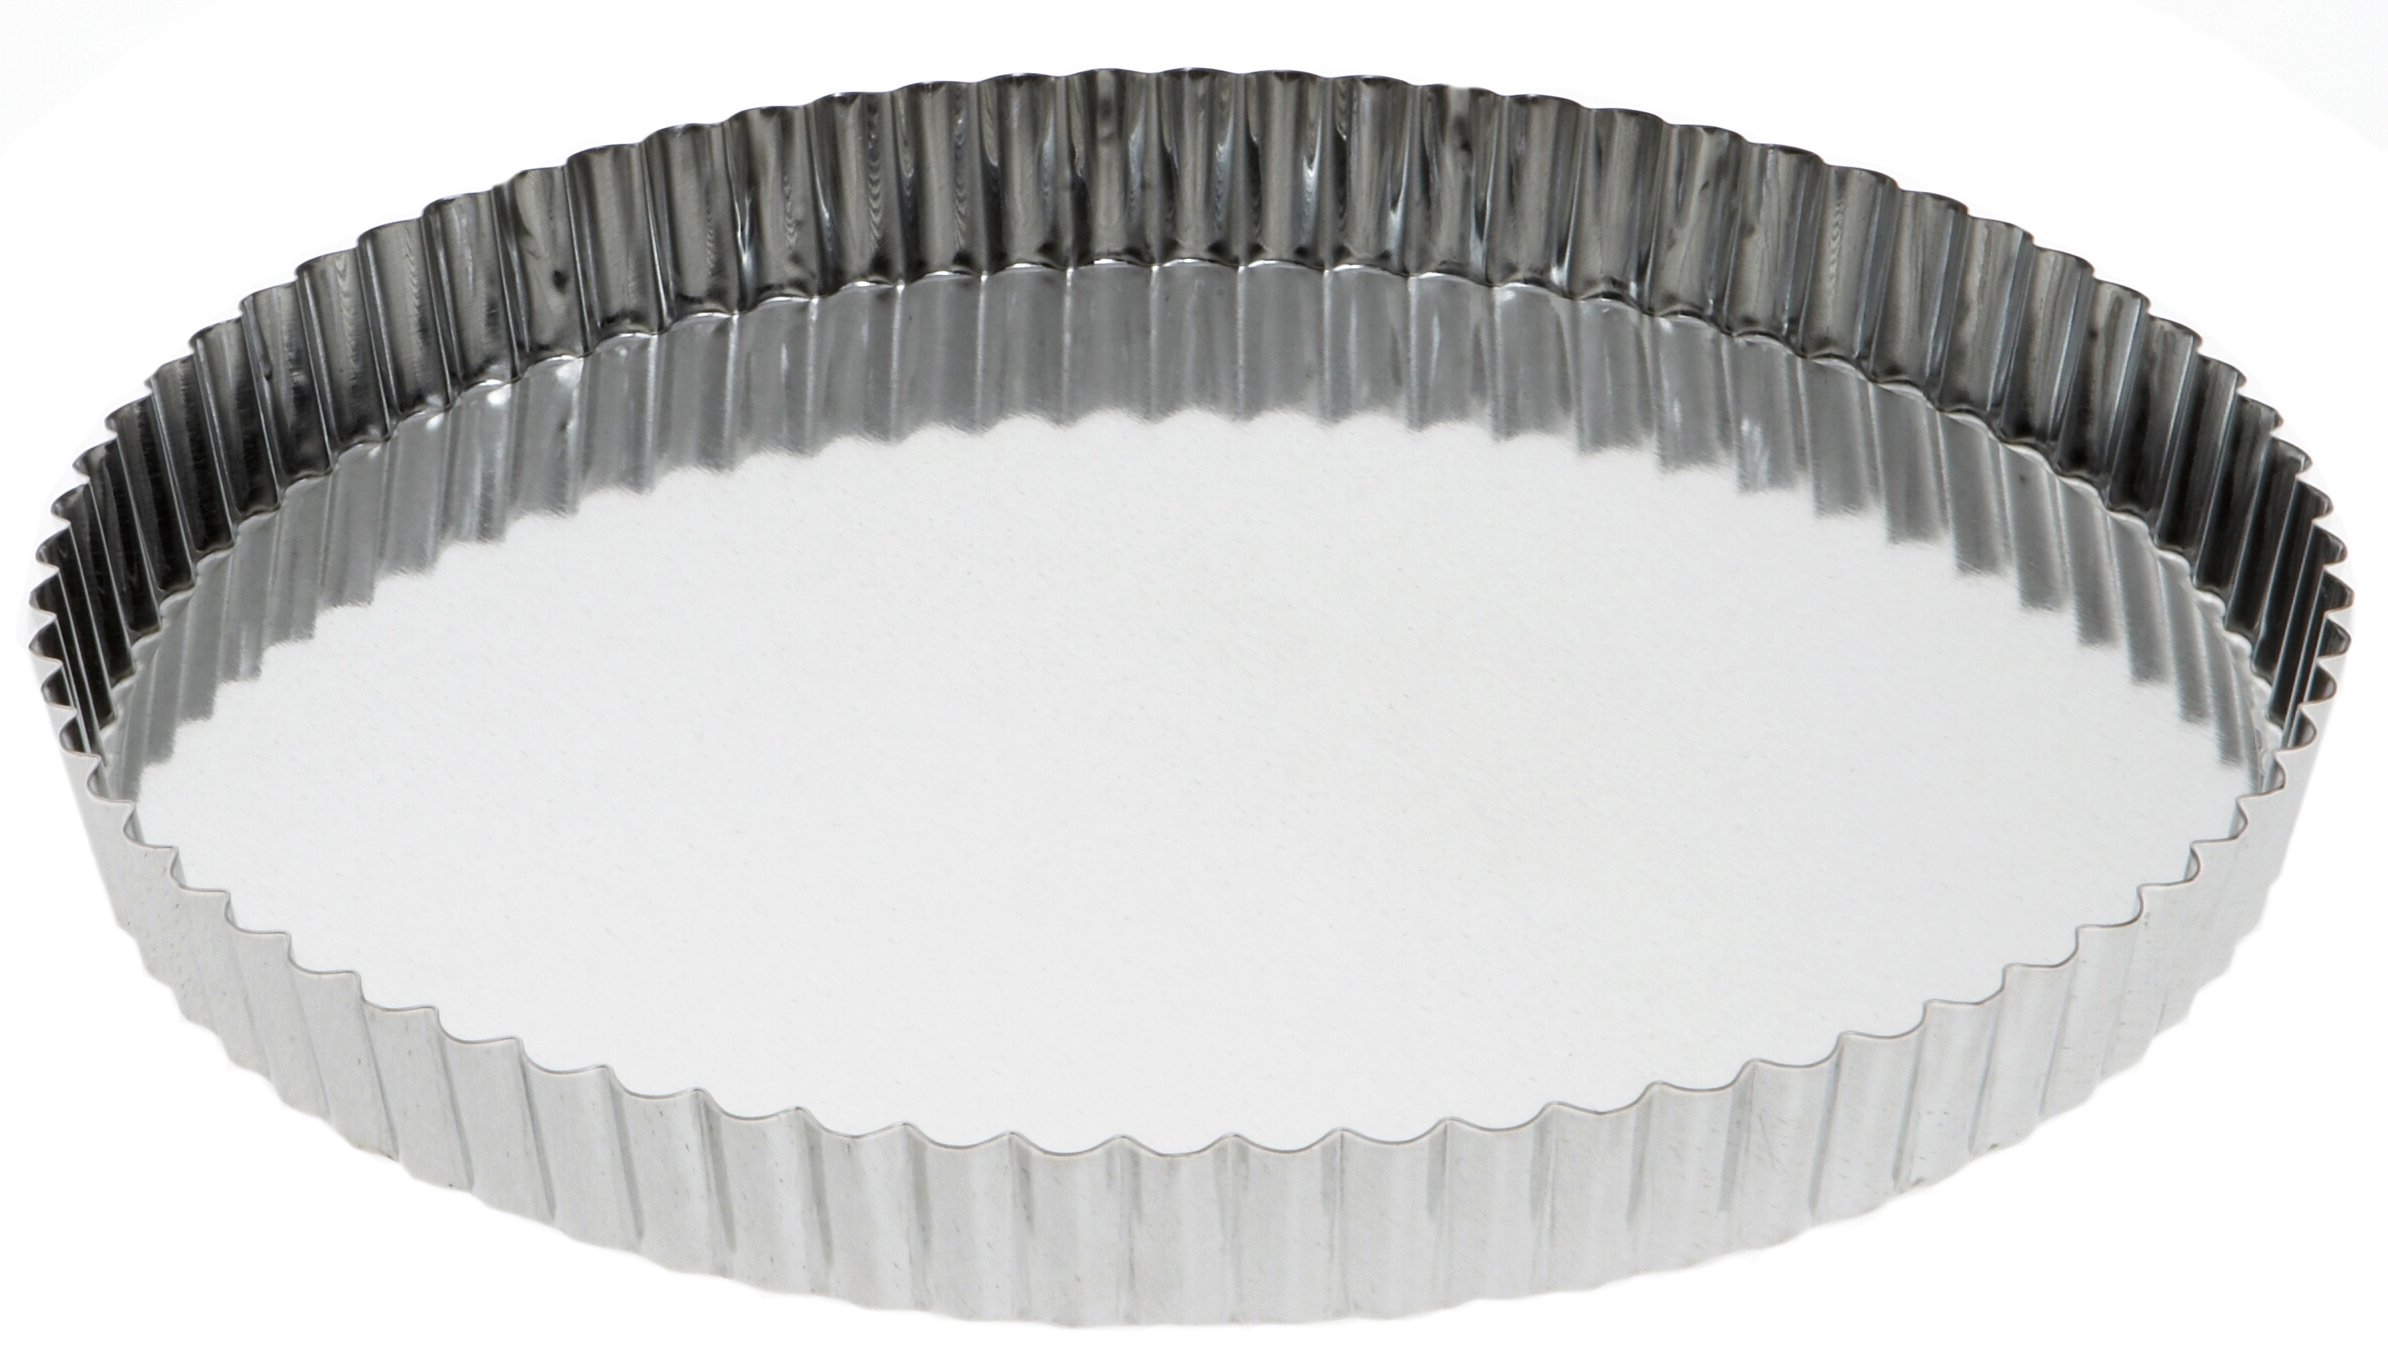 SCI Scandicrafts B264-32 Removable Bottom 12.5'' x 1'' Fluted Tart/Quiche Mold, Silver by SCI Scandicrafts